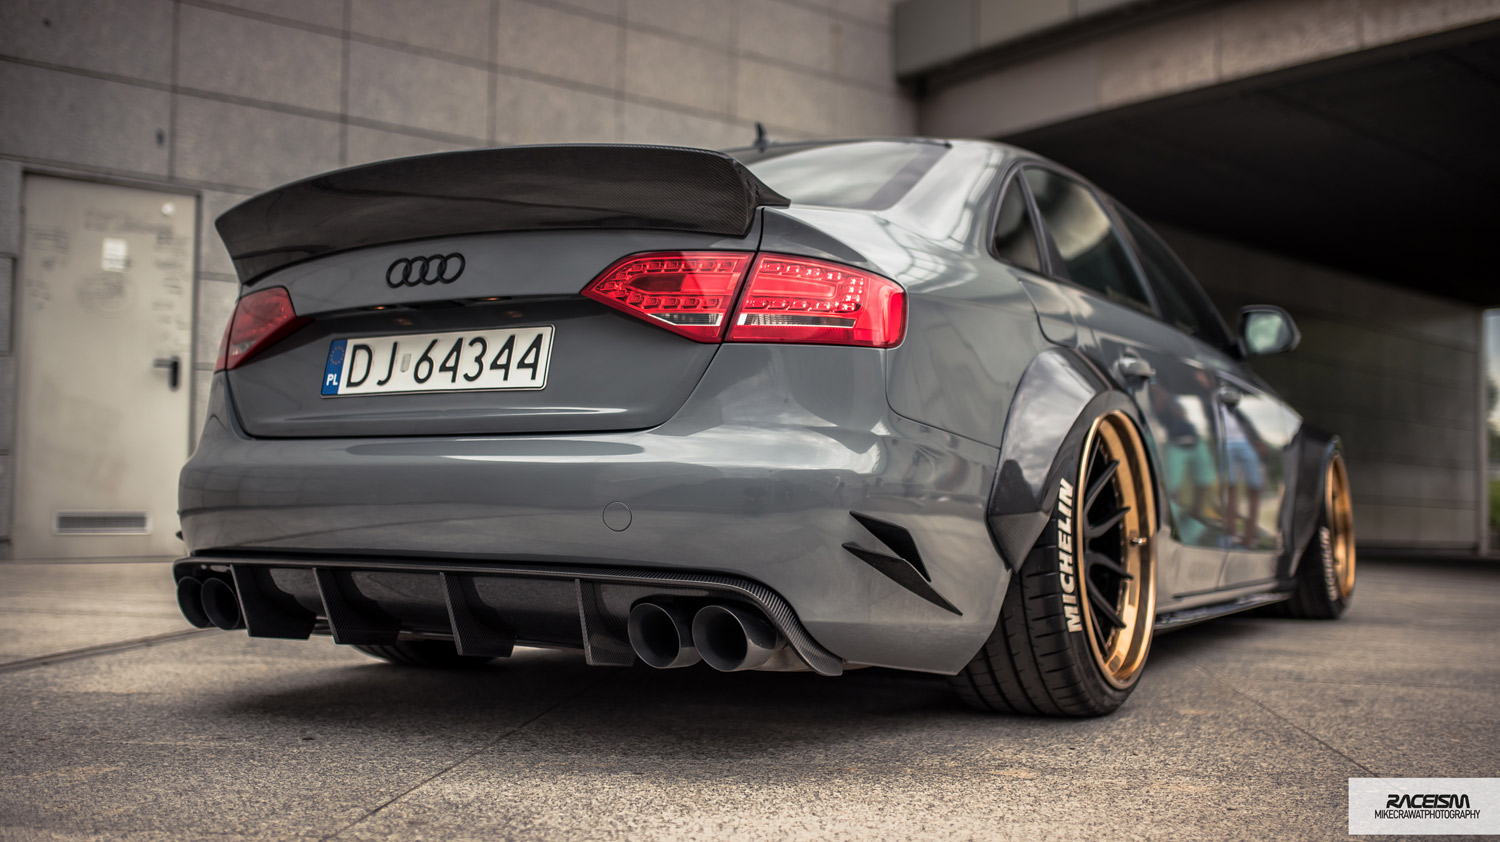 Audi A4 Carbon Rear Boot Duck Tail & Rear Diffuser